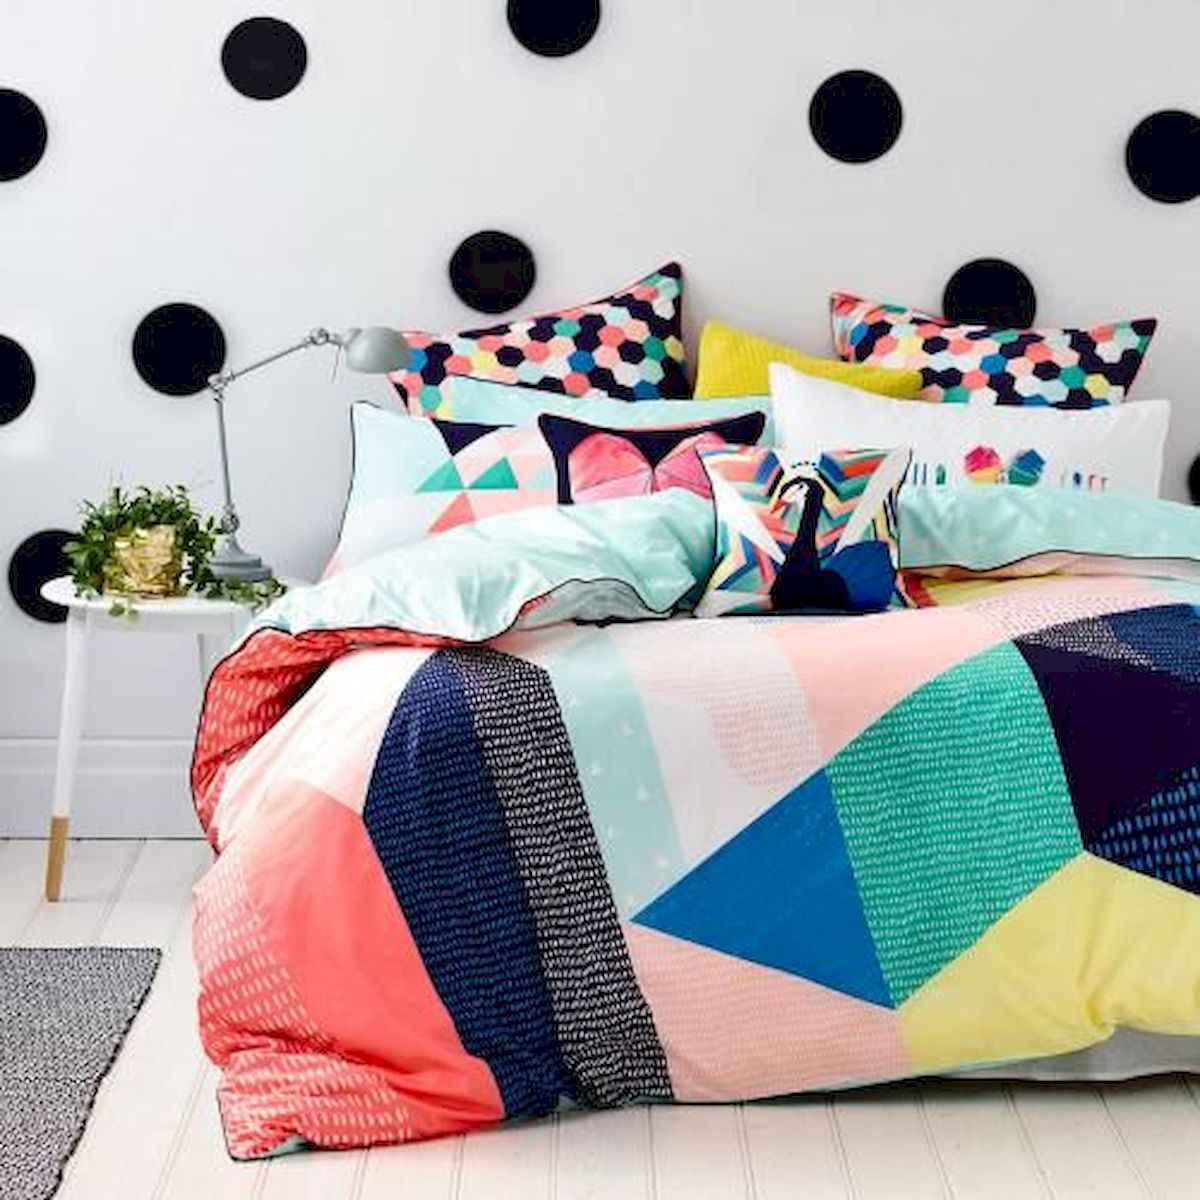 70+ Amazing Colorful Bedroom Decor Ideas And Remodel for Summer Project (16)